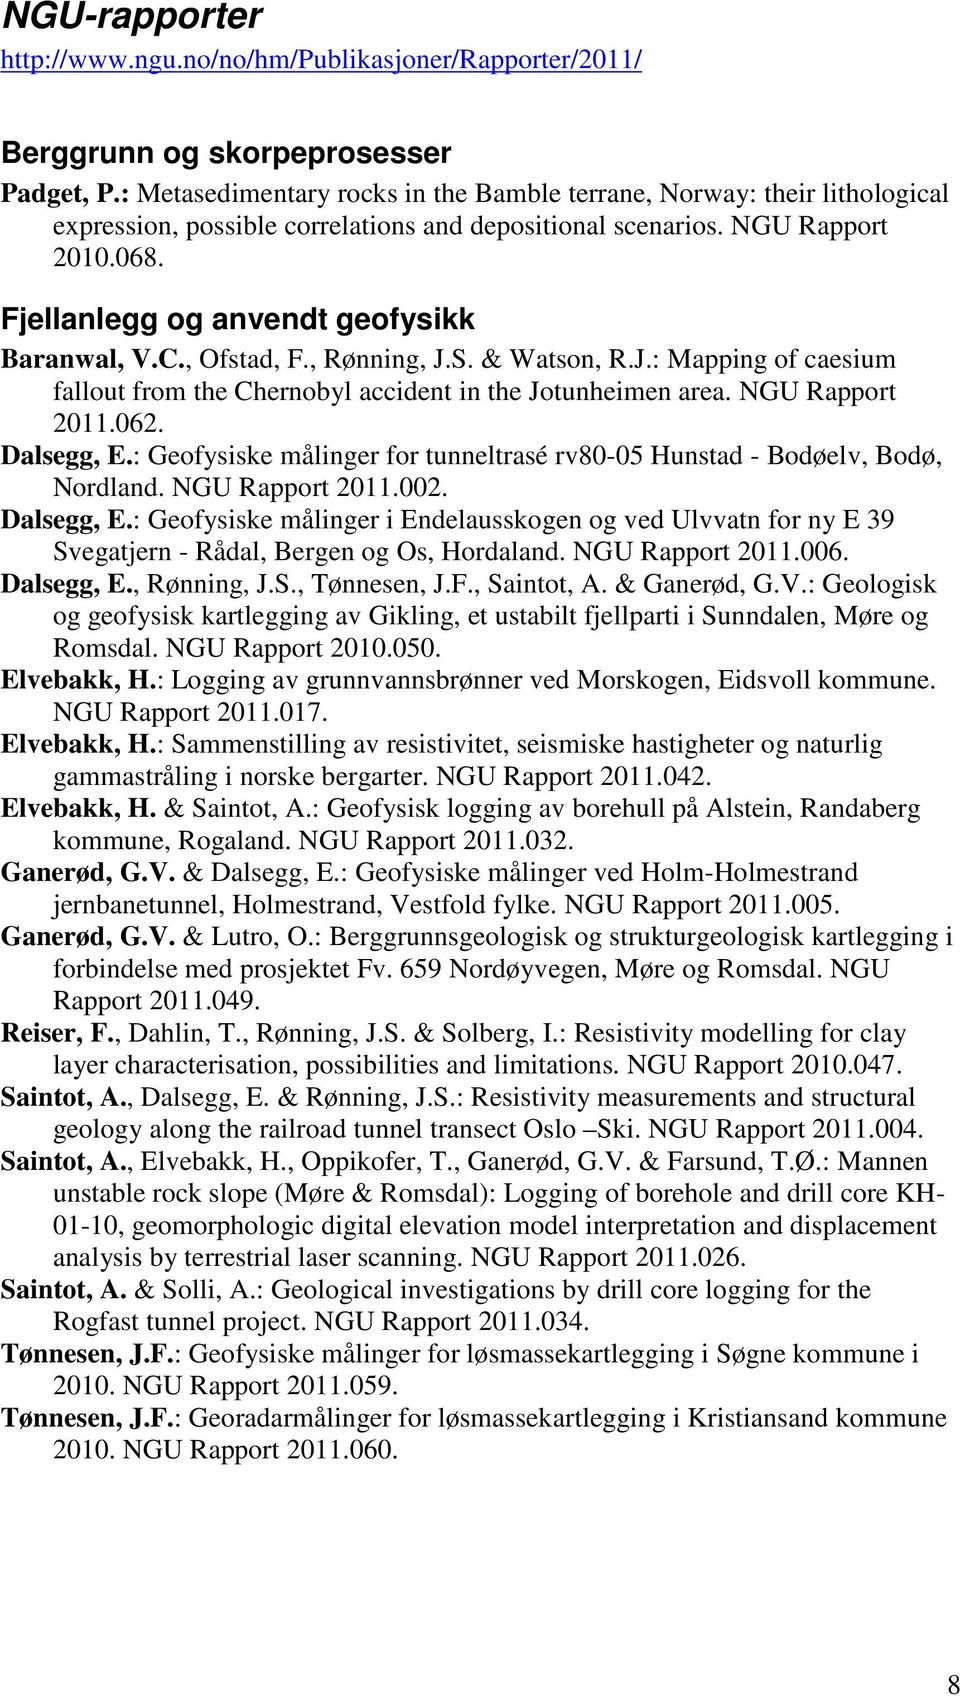 Fjellanlegg og anvendt geofysikk Baranwal, V.C., Ofstad, F., Rønning, J.S. & Watson, R.J.: Mapping of caesium fallout from the Chernobyl accident in the Jotunheimen area. NGU Rapport 2011.062.